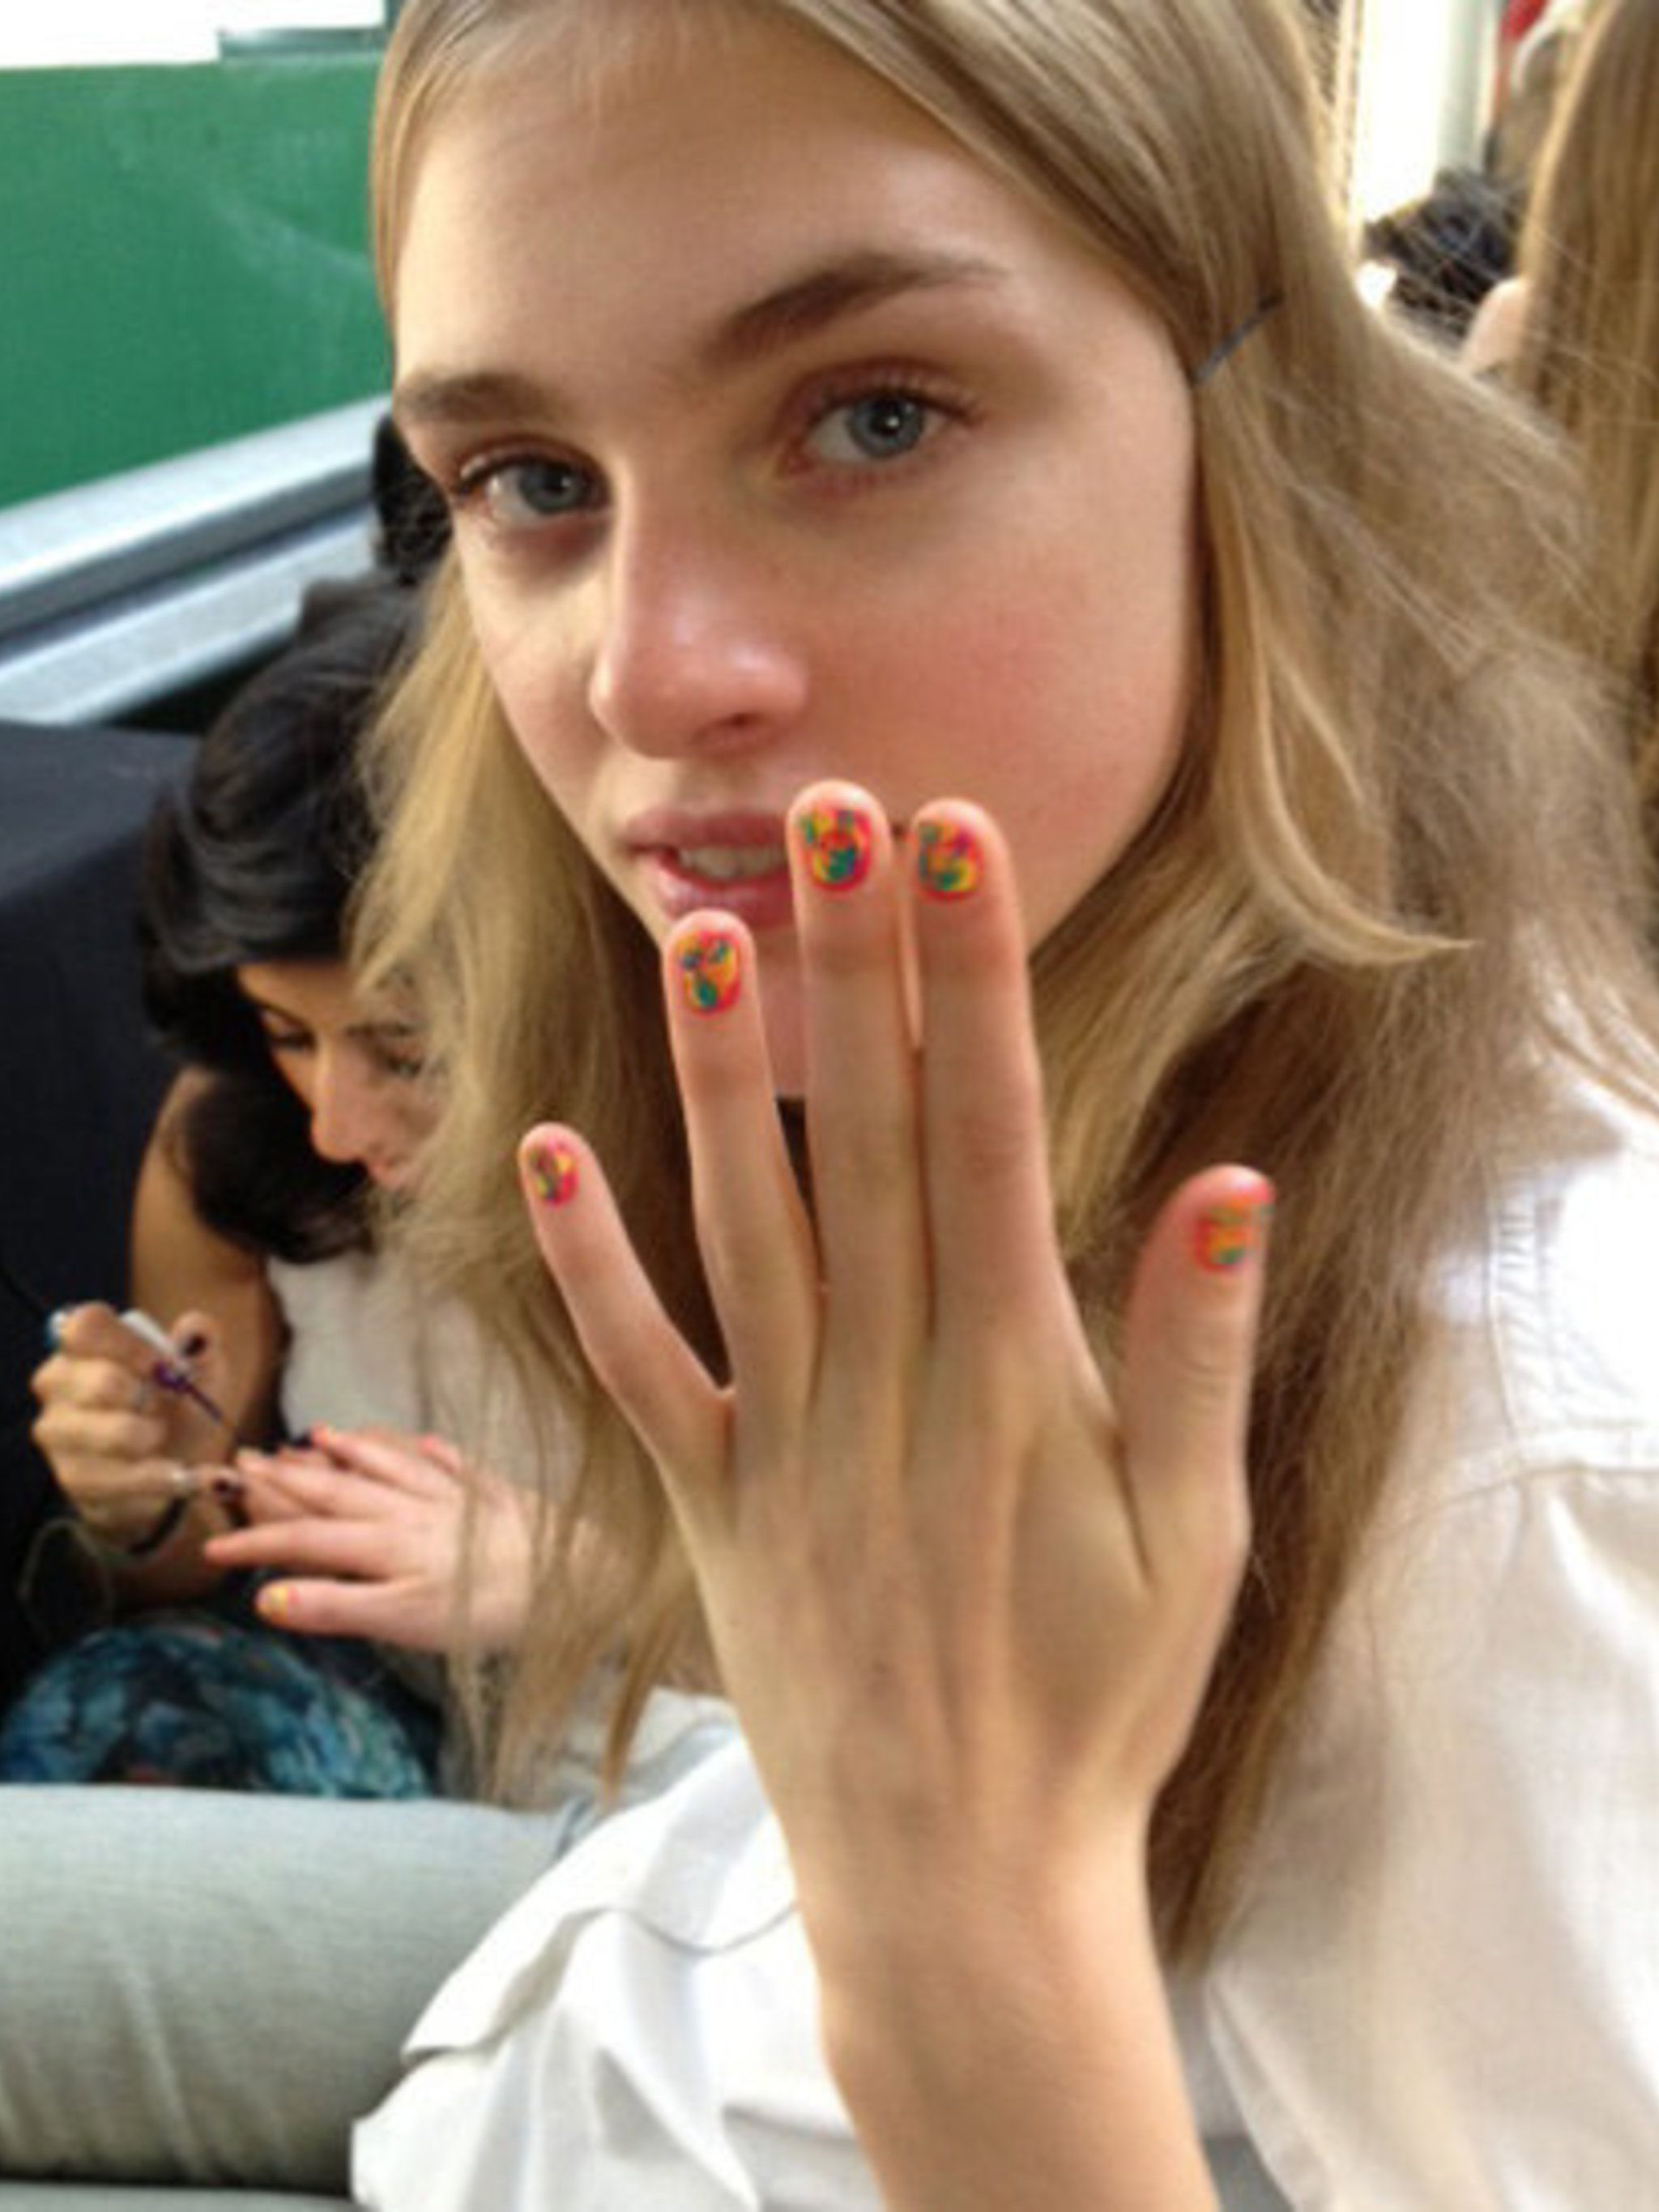 "<p>Nail queen <a href=""http://www.elleuk.com/beauty/beauty-notes-daily/from-raving-tips-to-painterly-pins"">Sophy Robson was inspired by a nineties rave</a> to create these painterly tips. </p>"